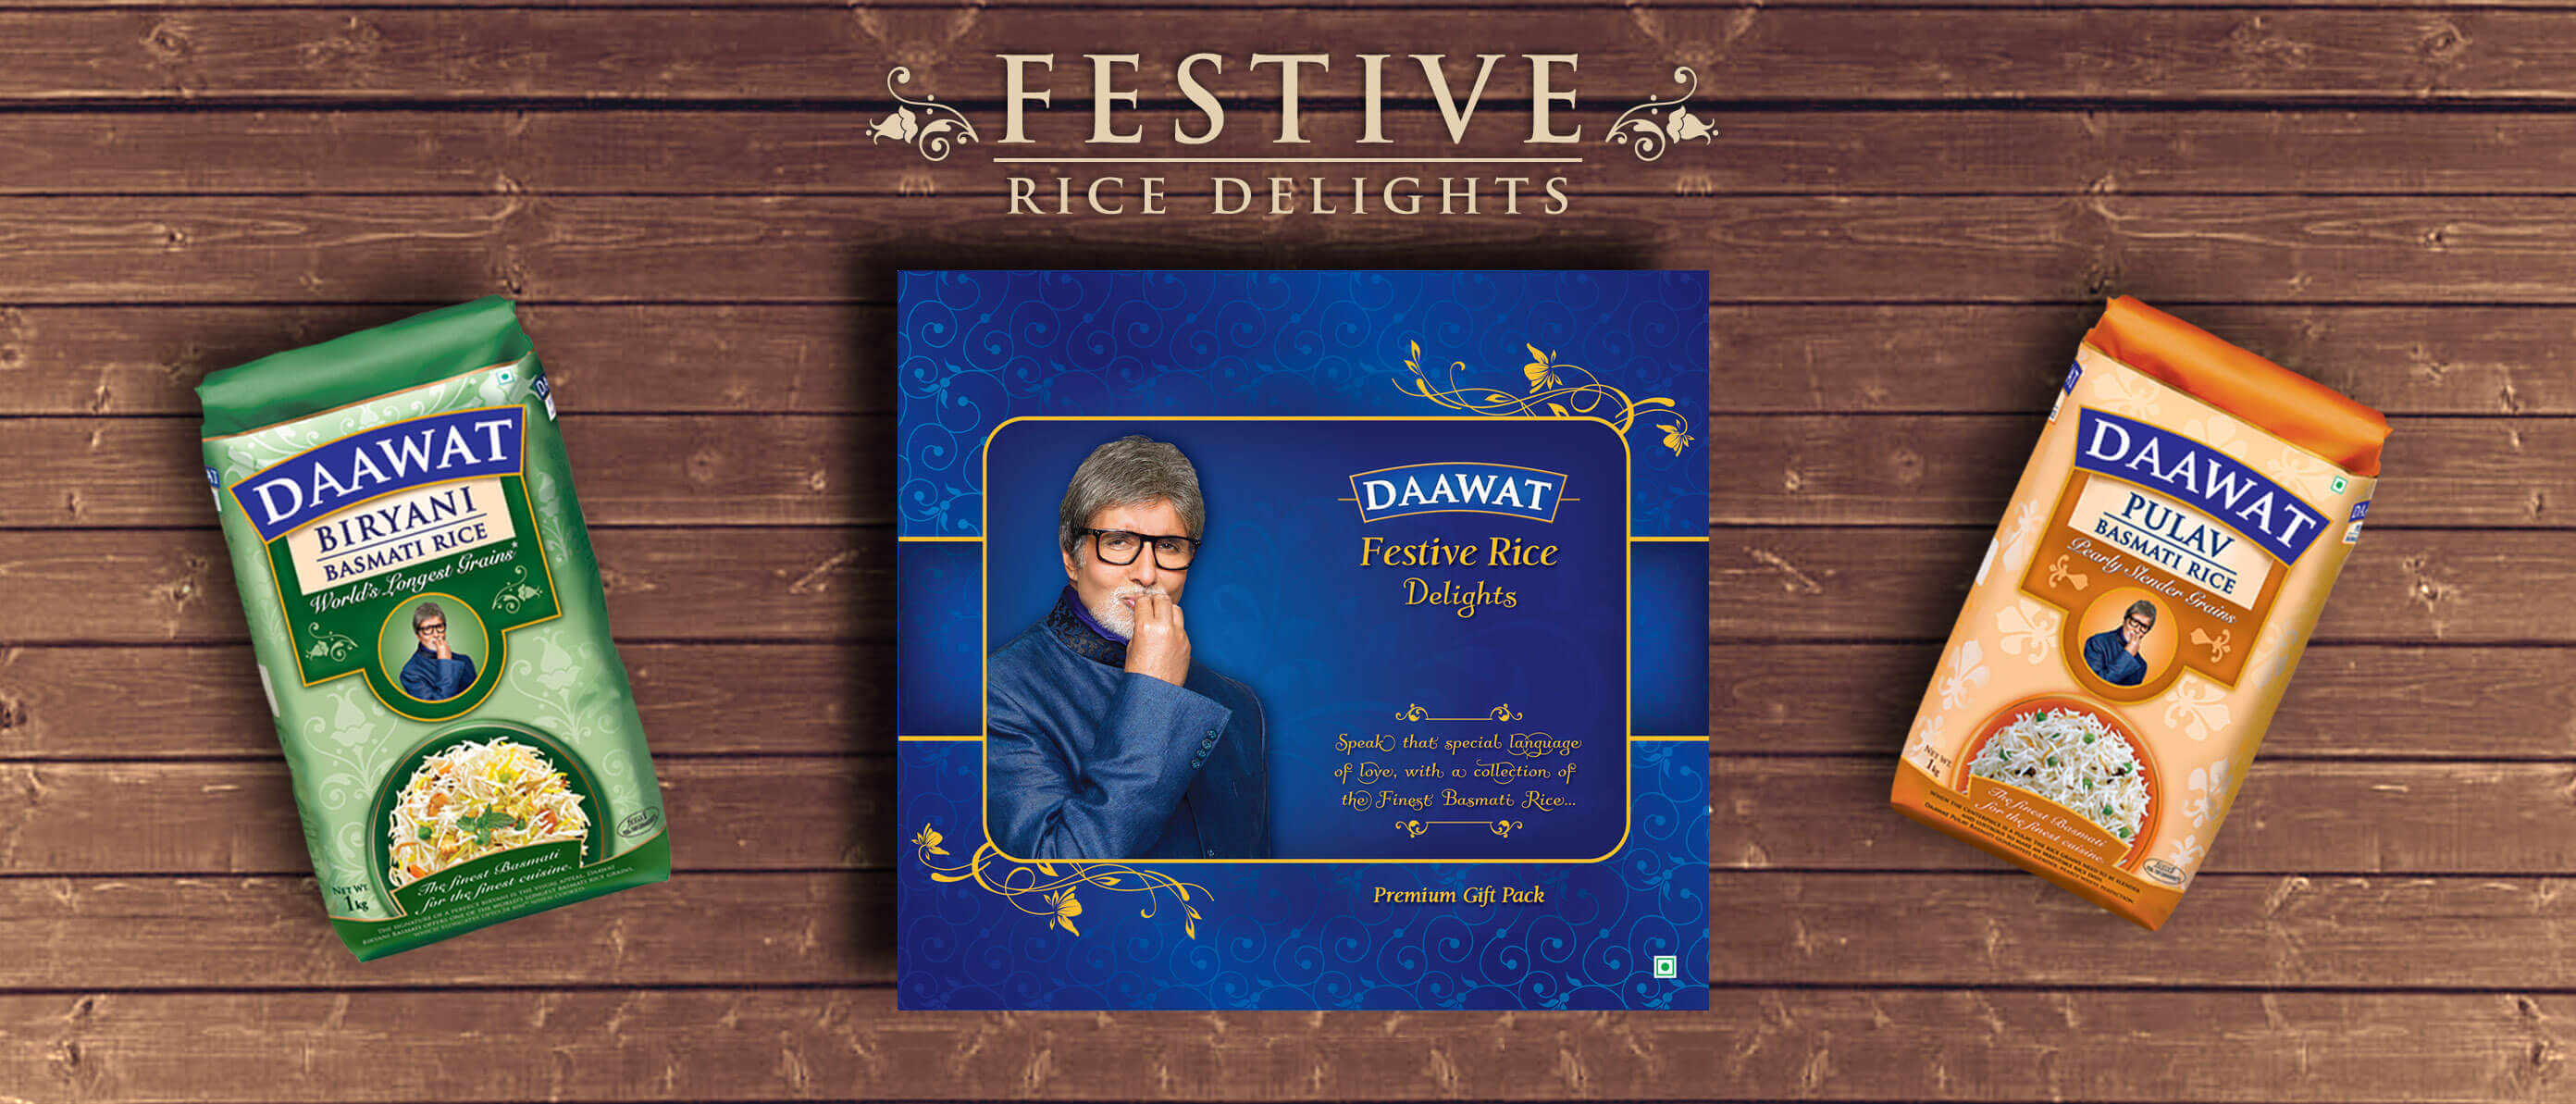 Festive Rice Delights